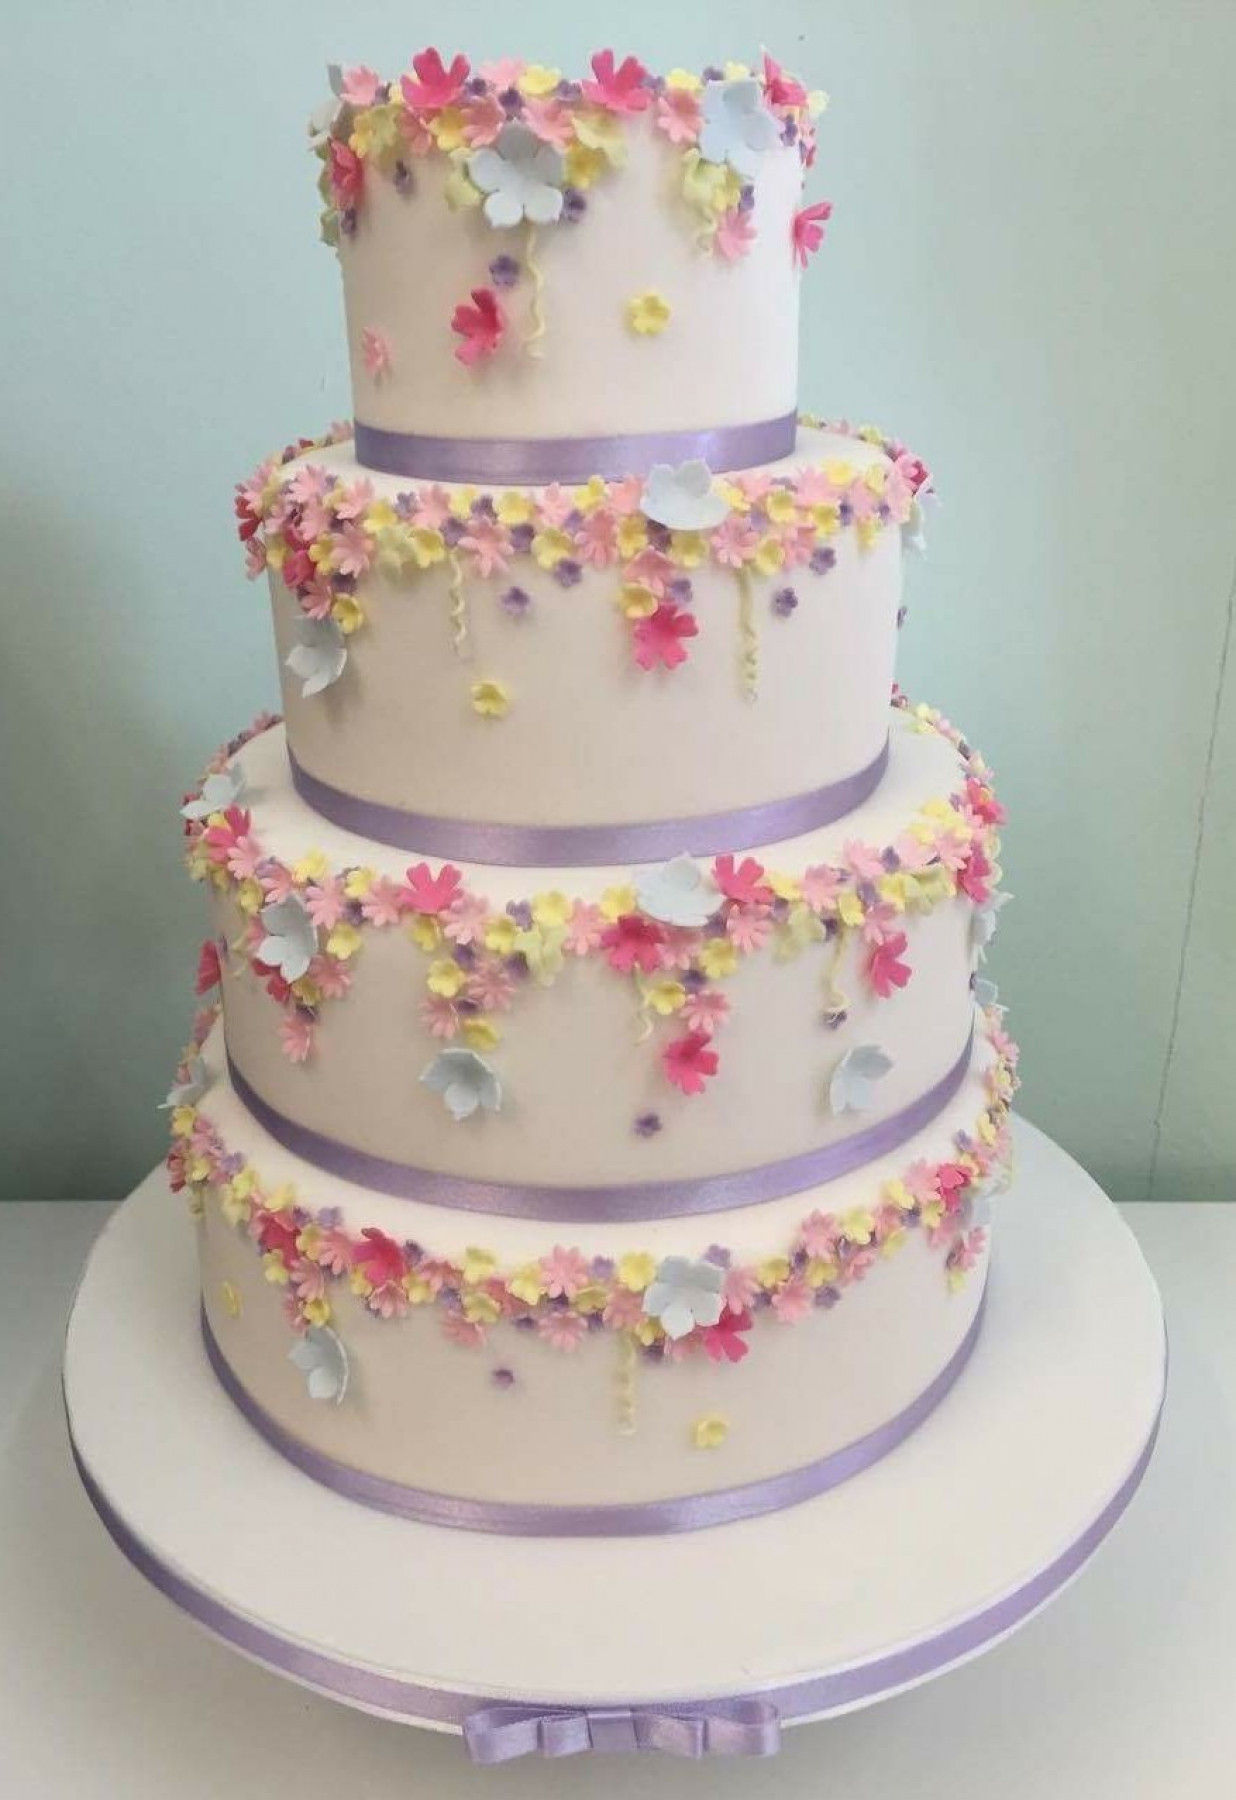 Wedding Cakes Ideas Inspiration and Makers WeddingPlannercouk